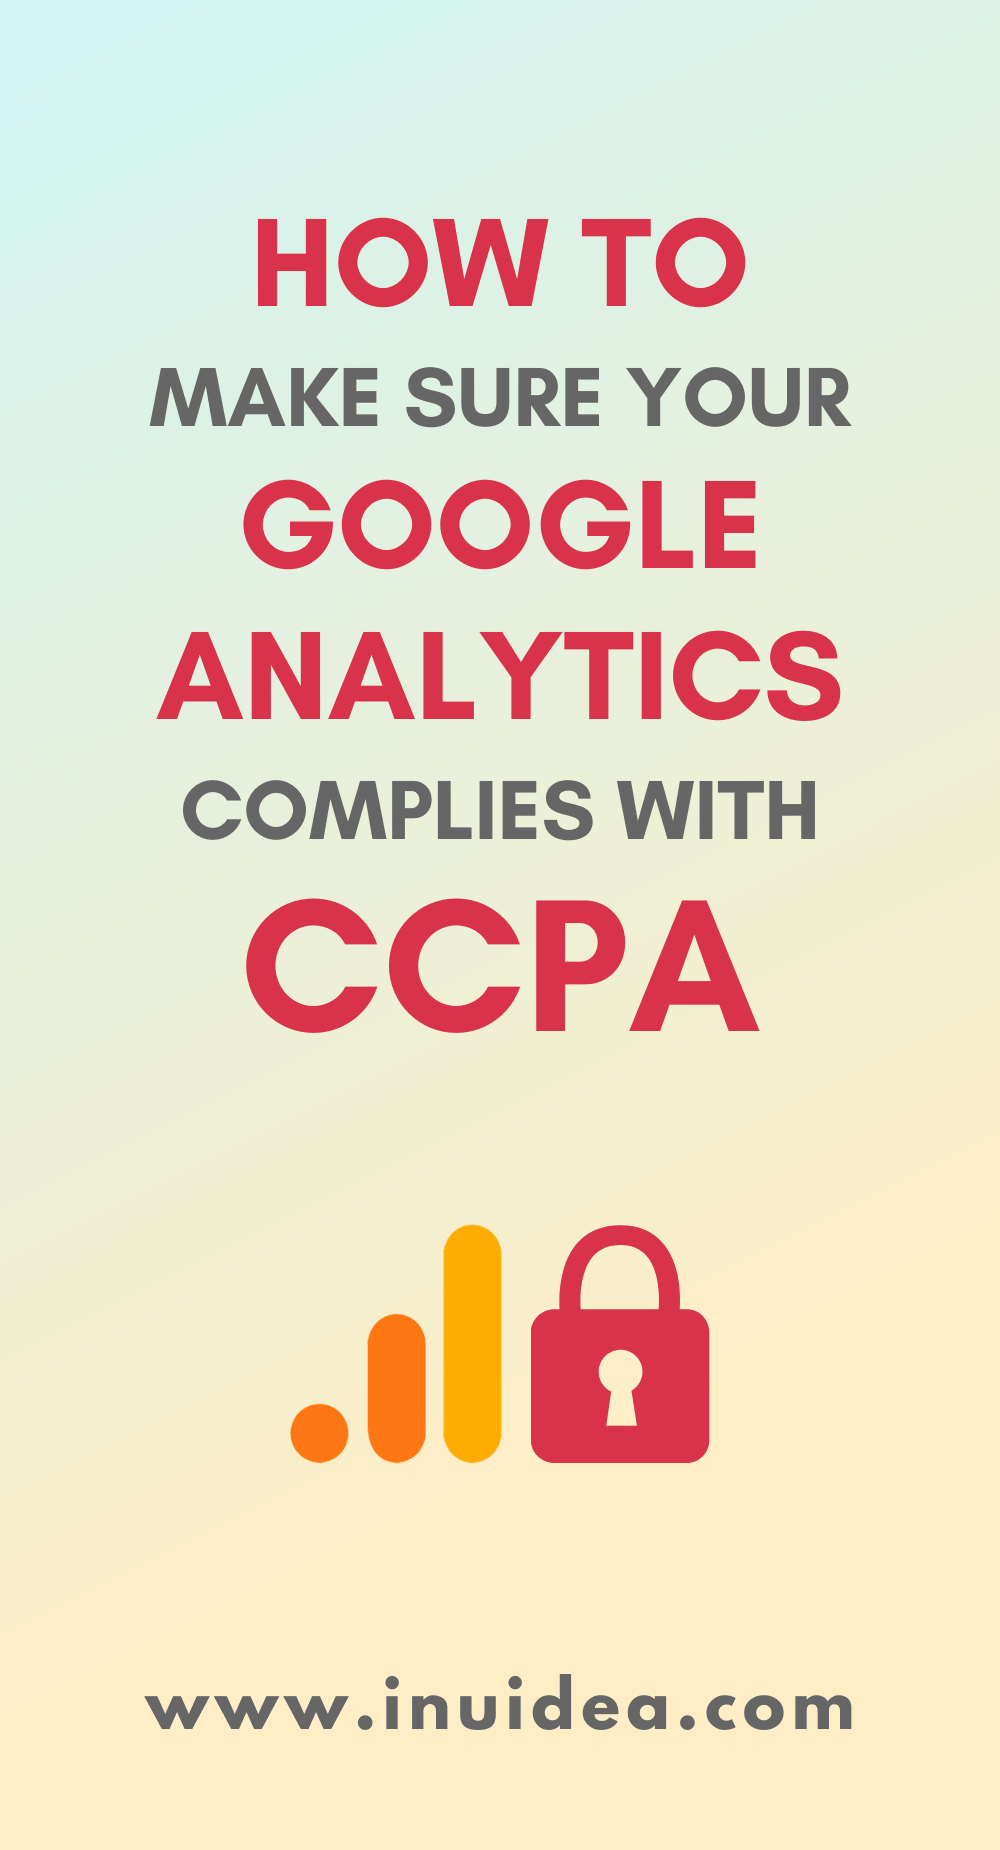 How to Make Sure Your Google Analytics Complies with CCPA